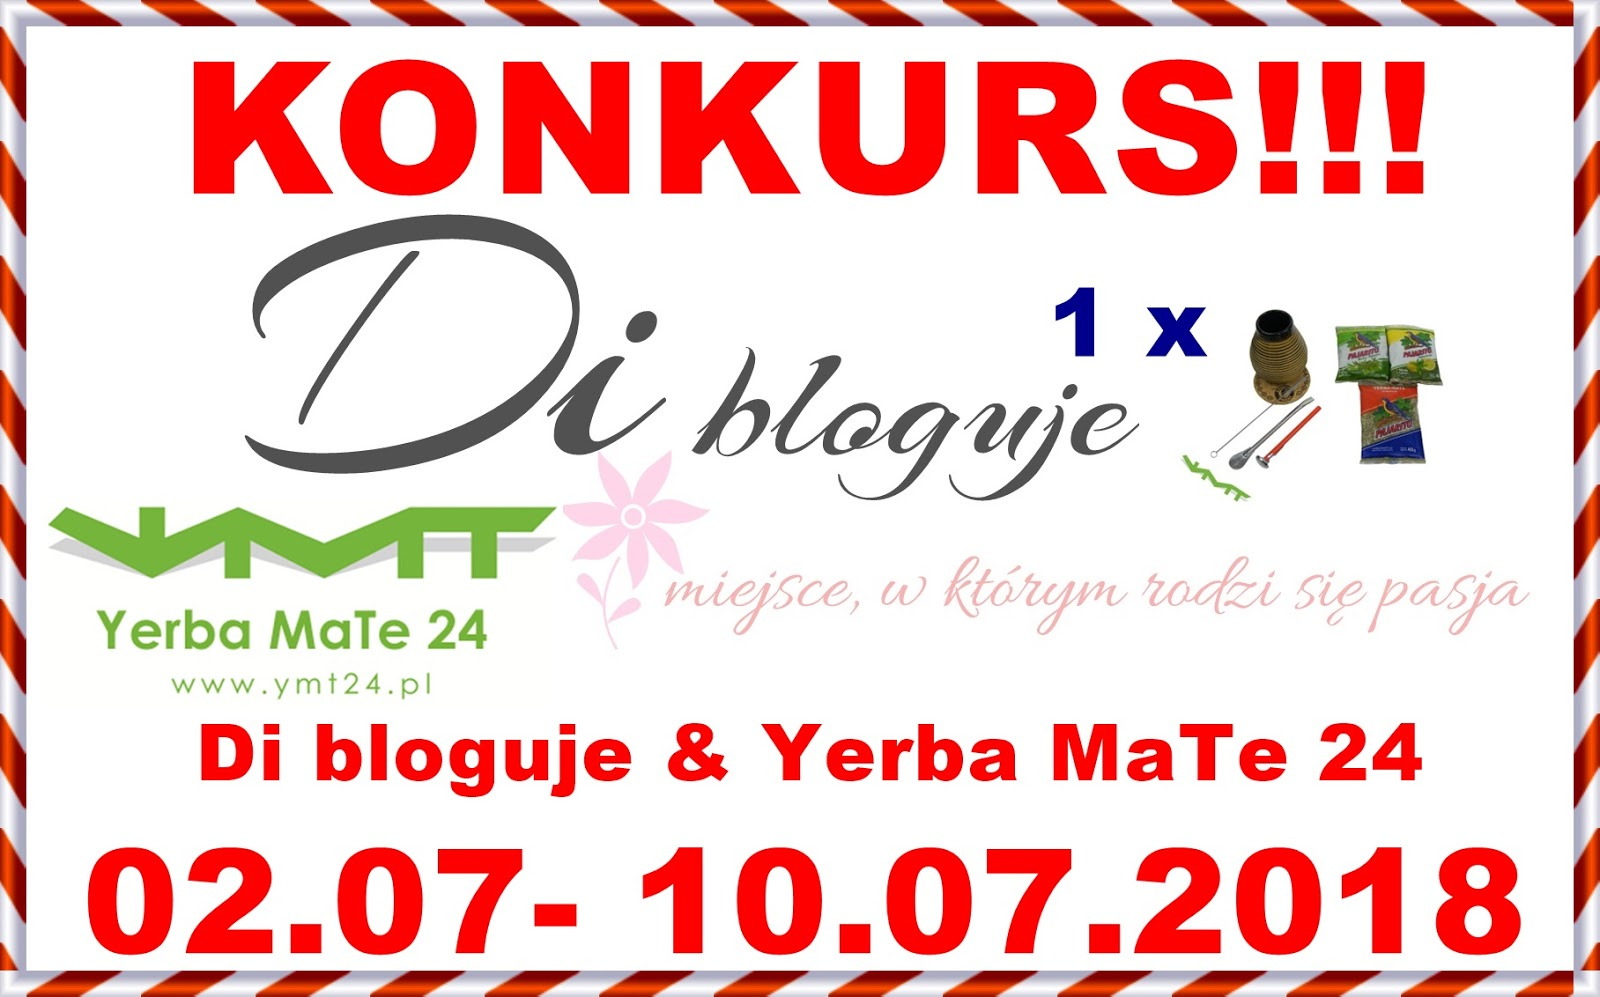 Konkurs na facebooku - Di bloguje & Yerba MaTe 24 - do wygrania zestaw startowy do yerba mate